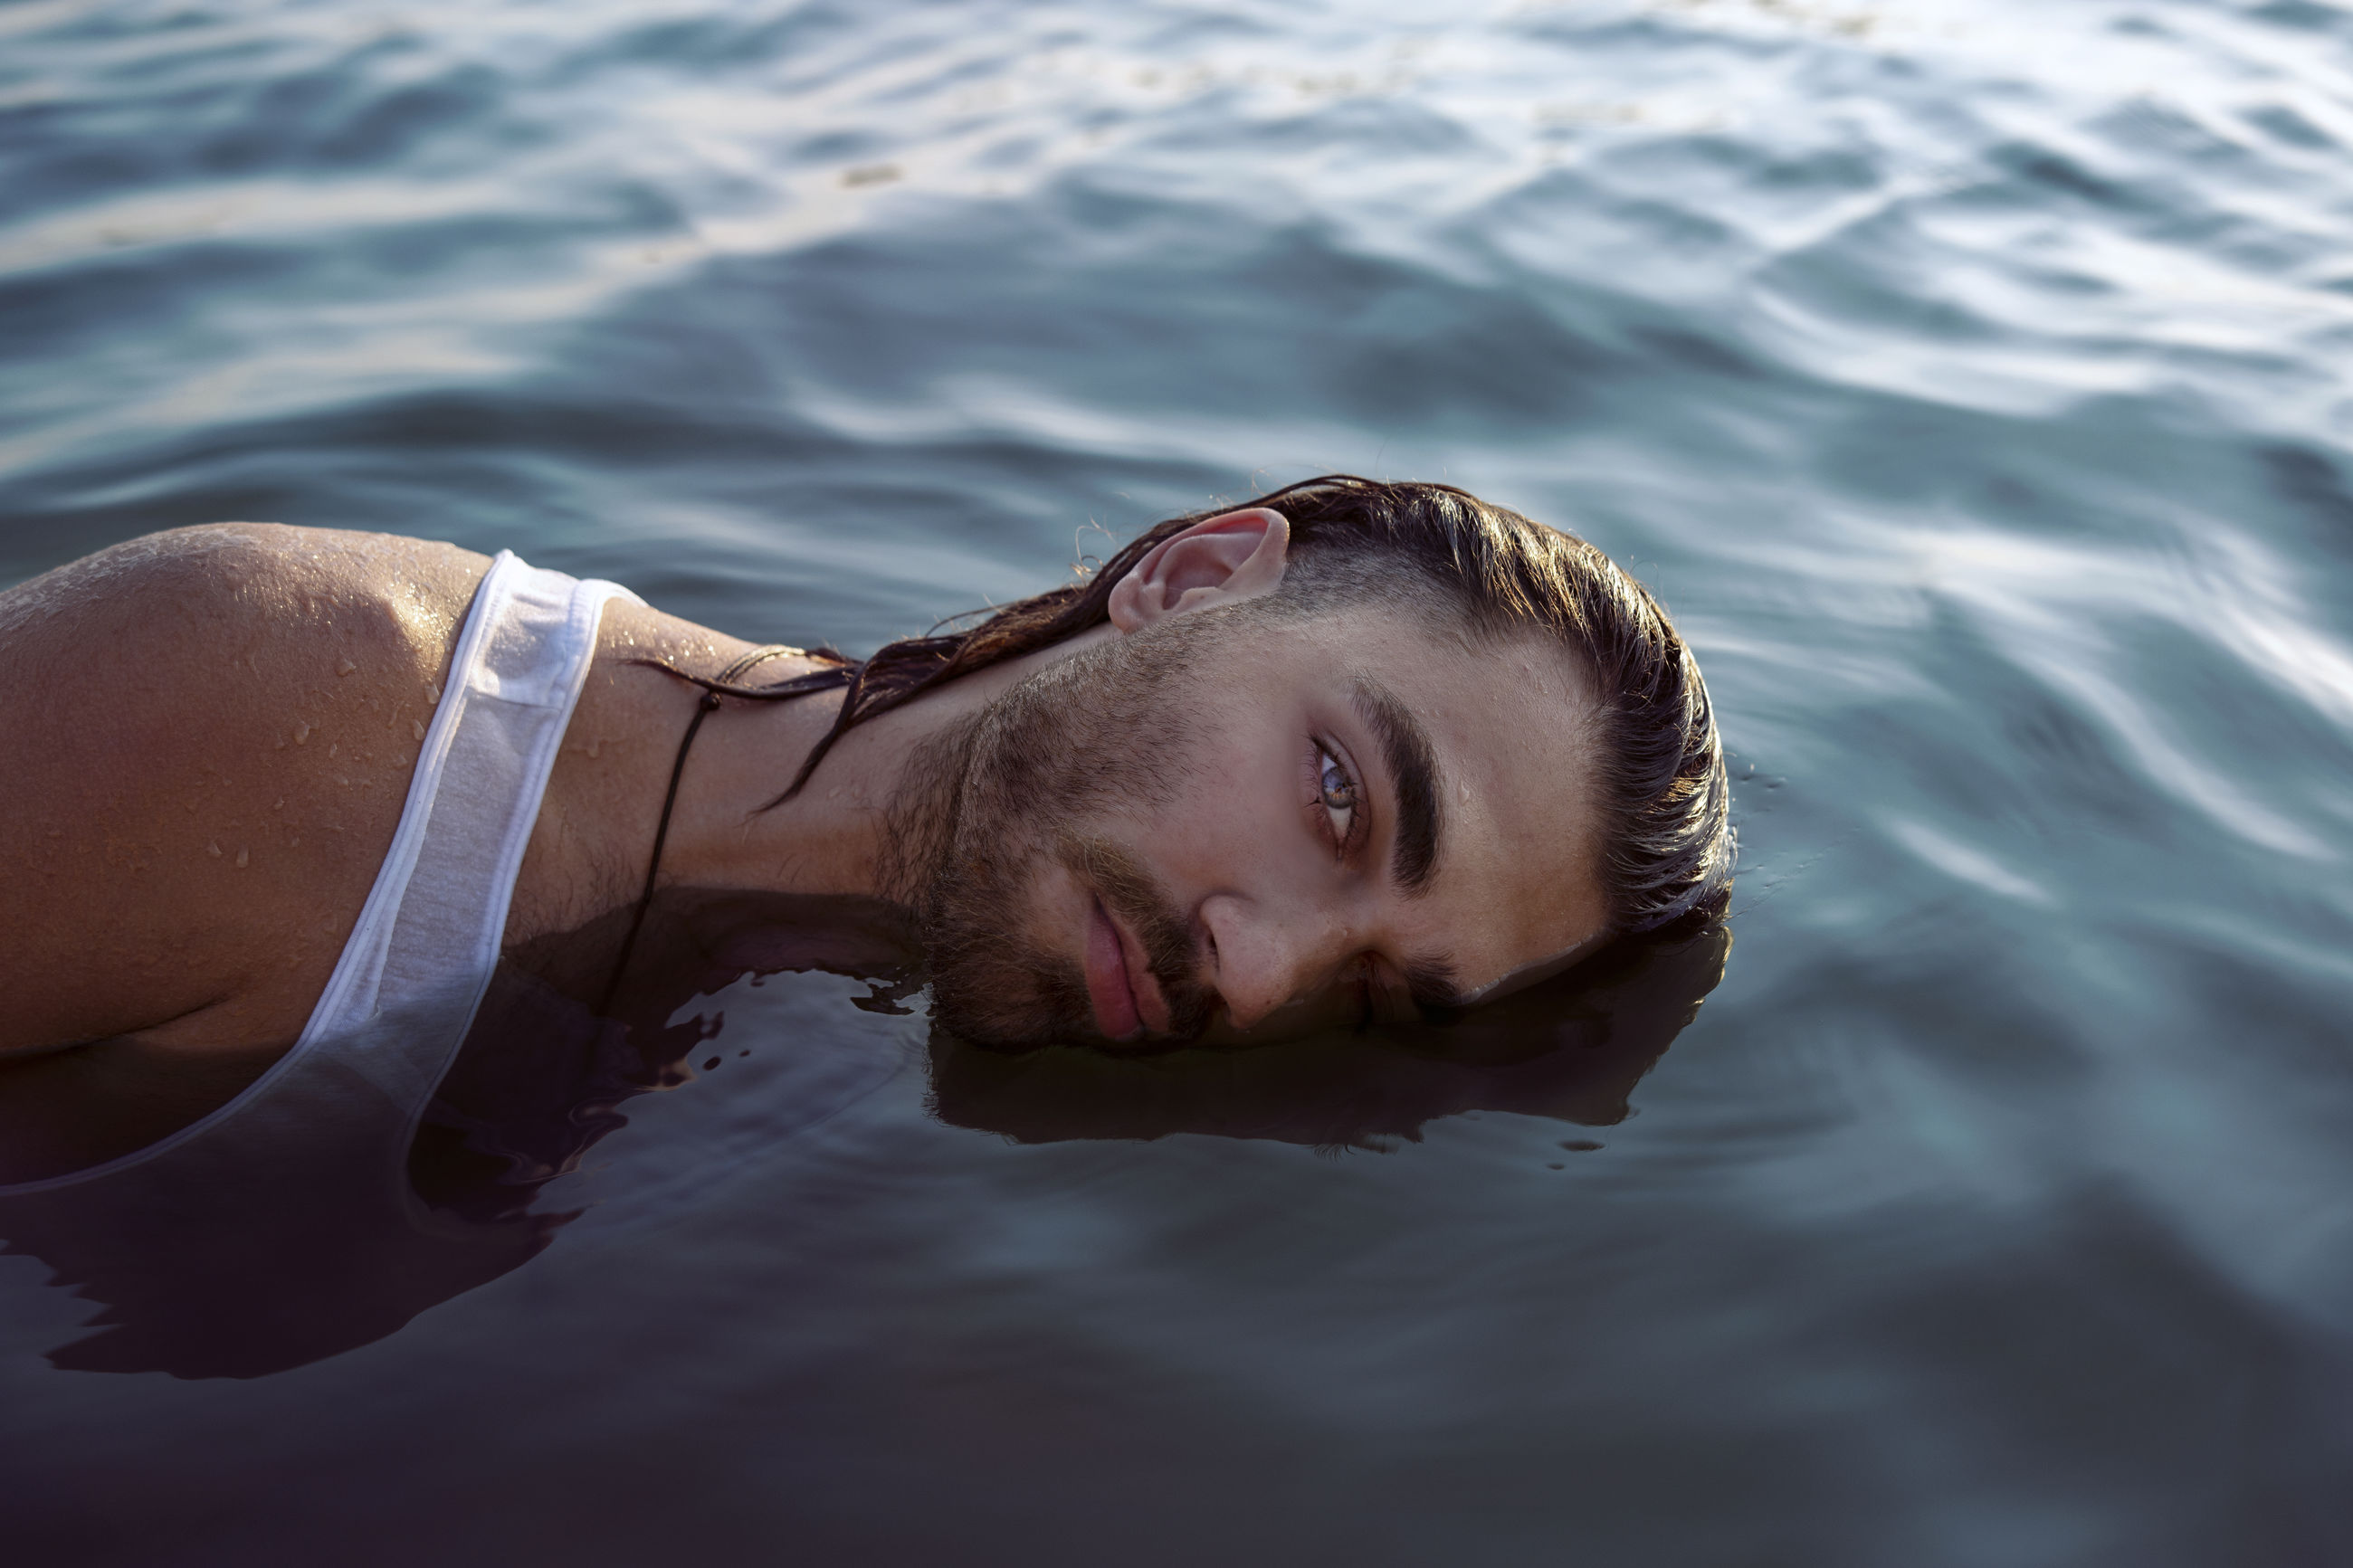 lying down, one person, young adult, relaxation, water, portrait, leisure activity, headshot, young men, real people, nature, high angle view, day, lifestyles, men, lying on back, beauty, outdoors, floating on water, beautiful woman